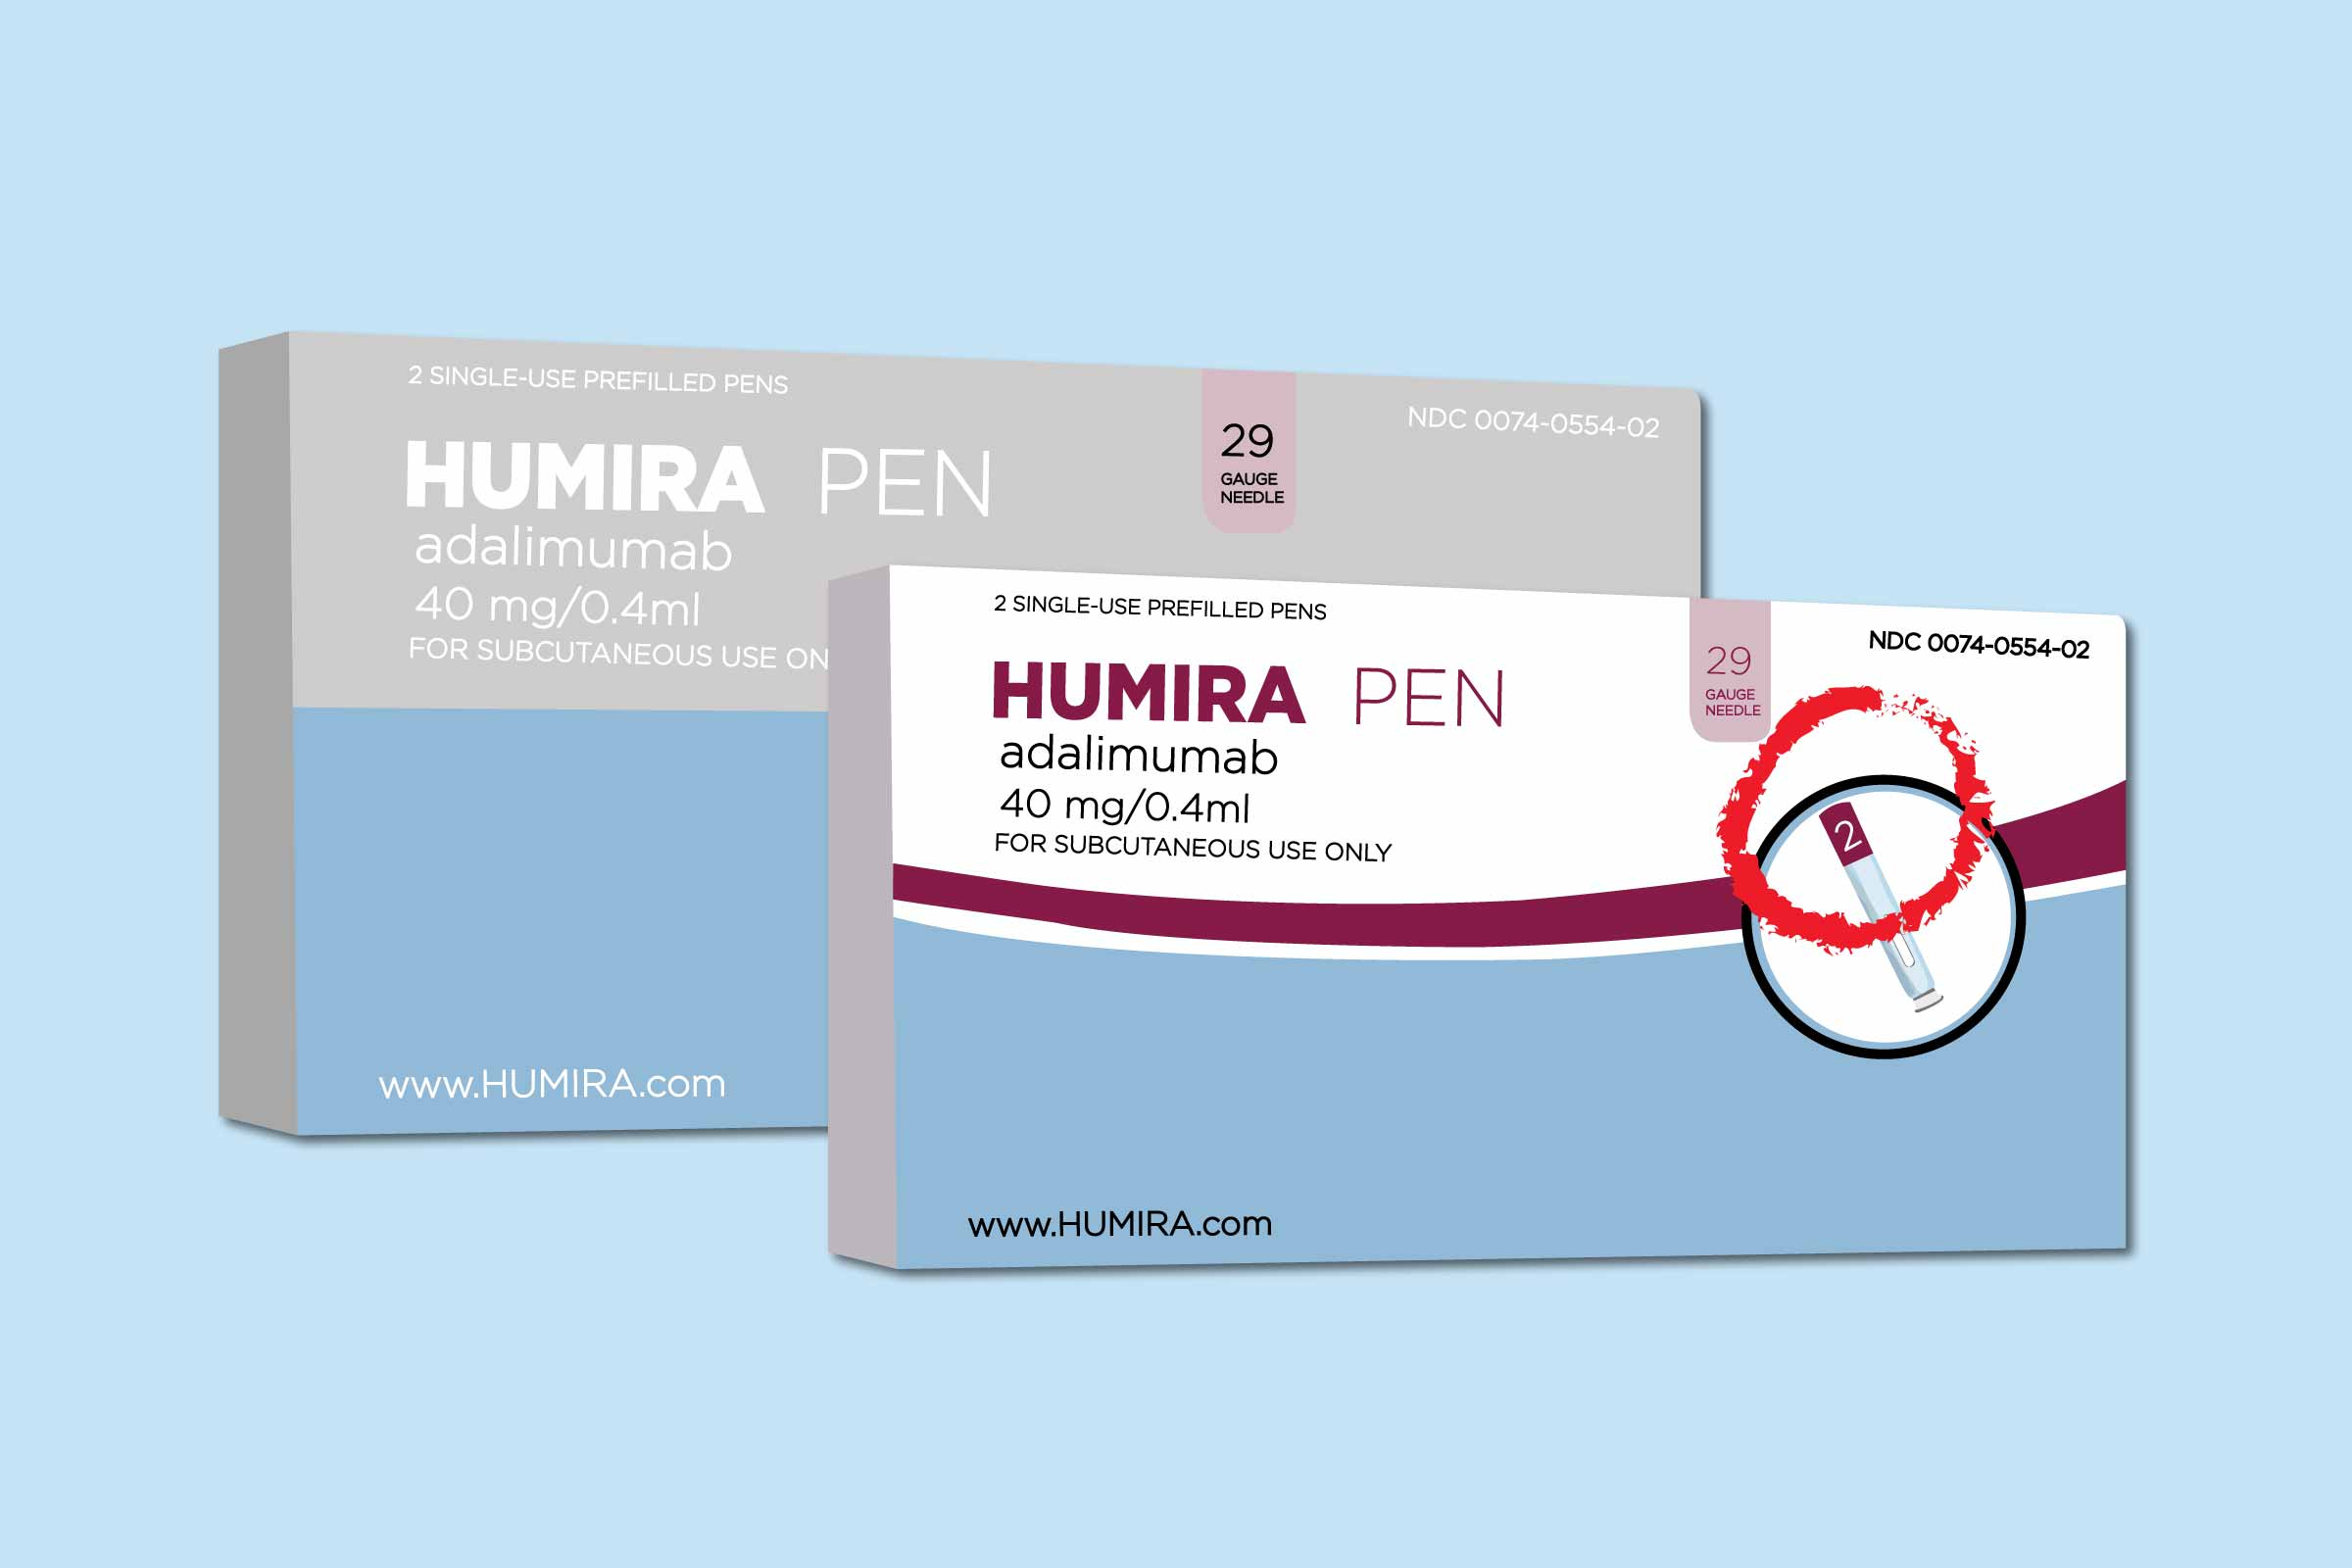 Taking Citrate-Free Humira: What Patients Need to Know